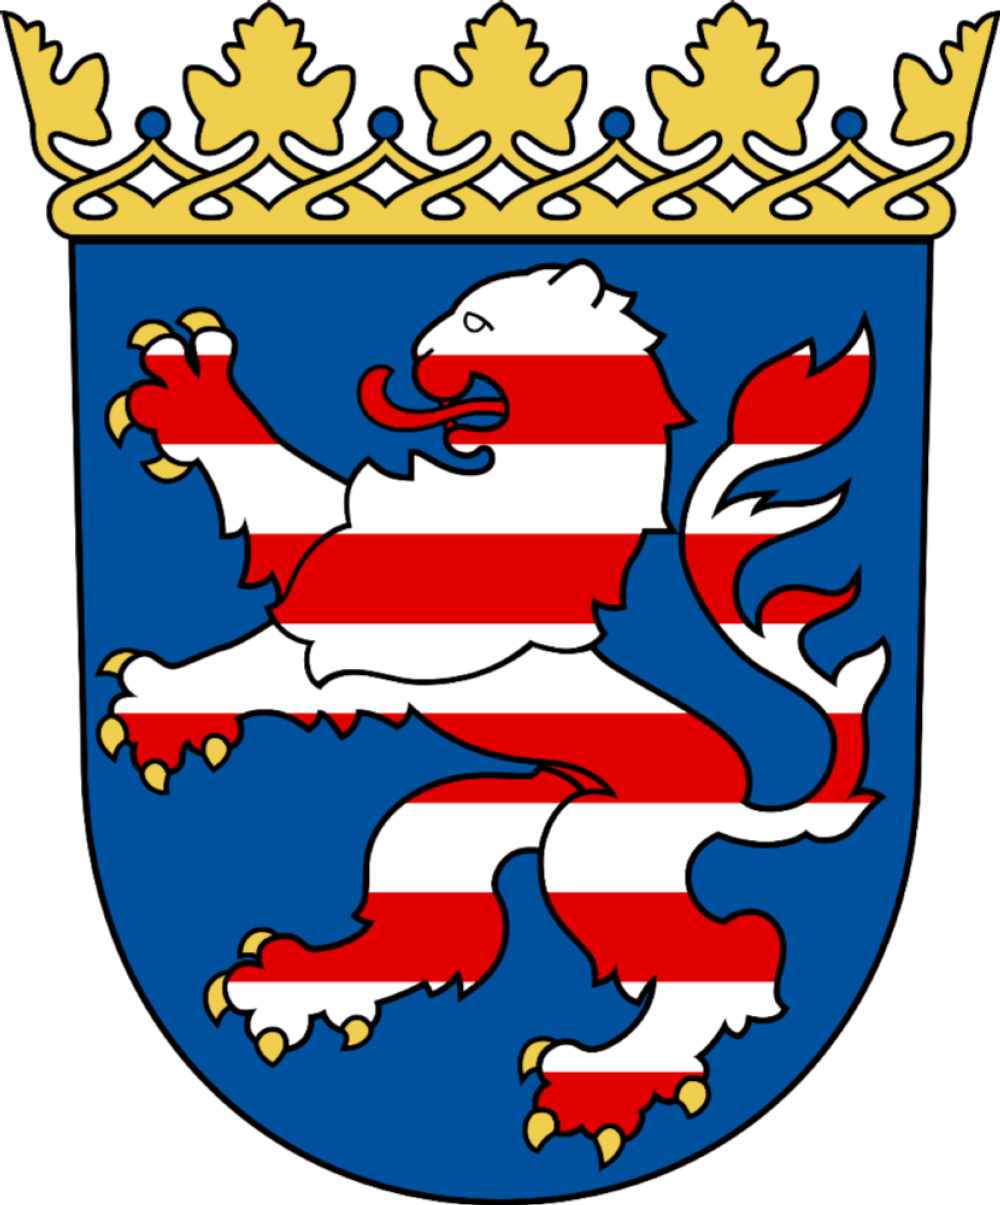 Hessen Coat of Arms